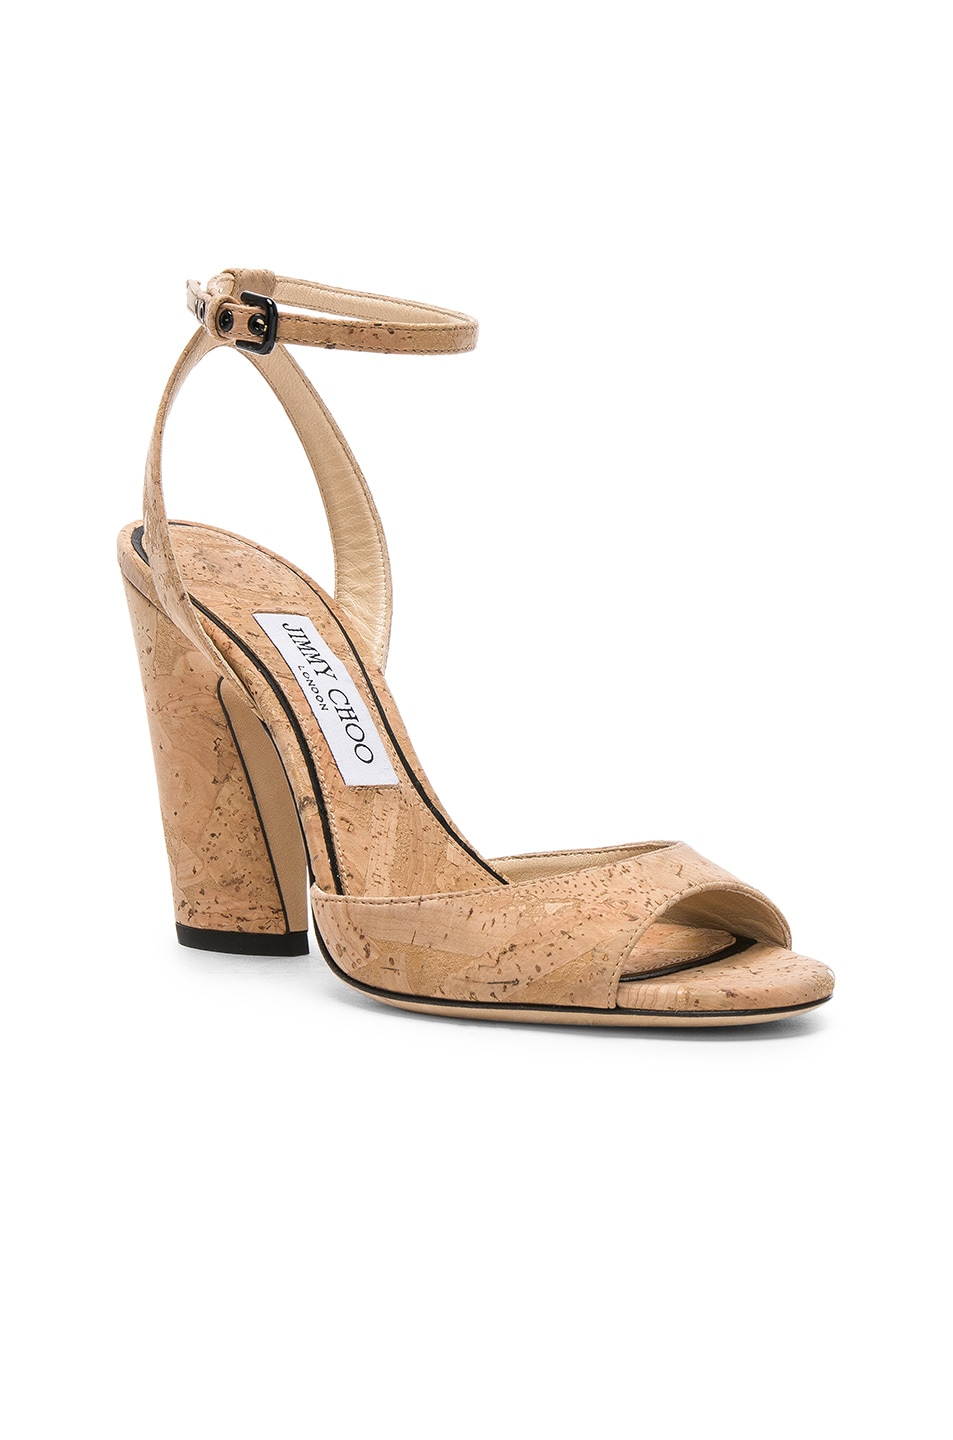 7af1d83f78e1 Image 2 of Jimmy Choo Miranda 100 Cork Sandal in Nude